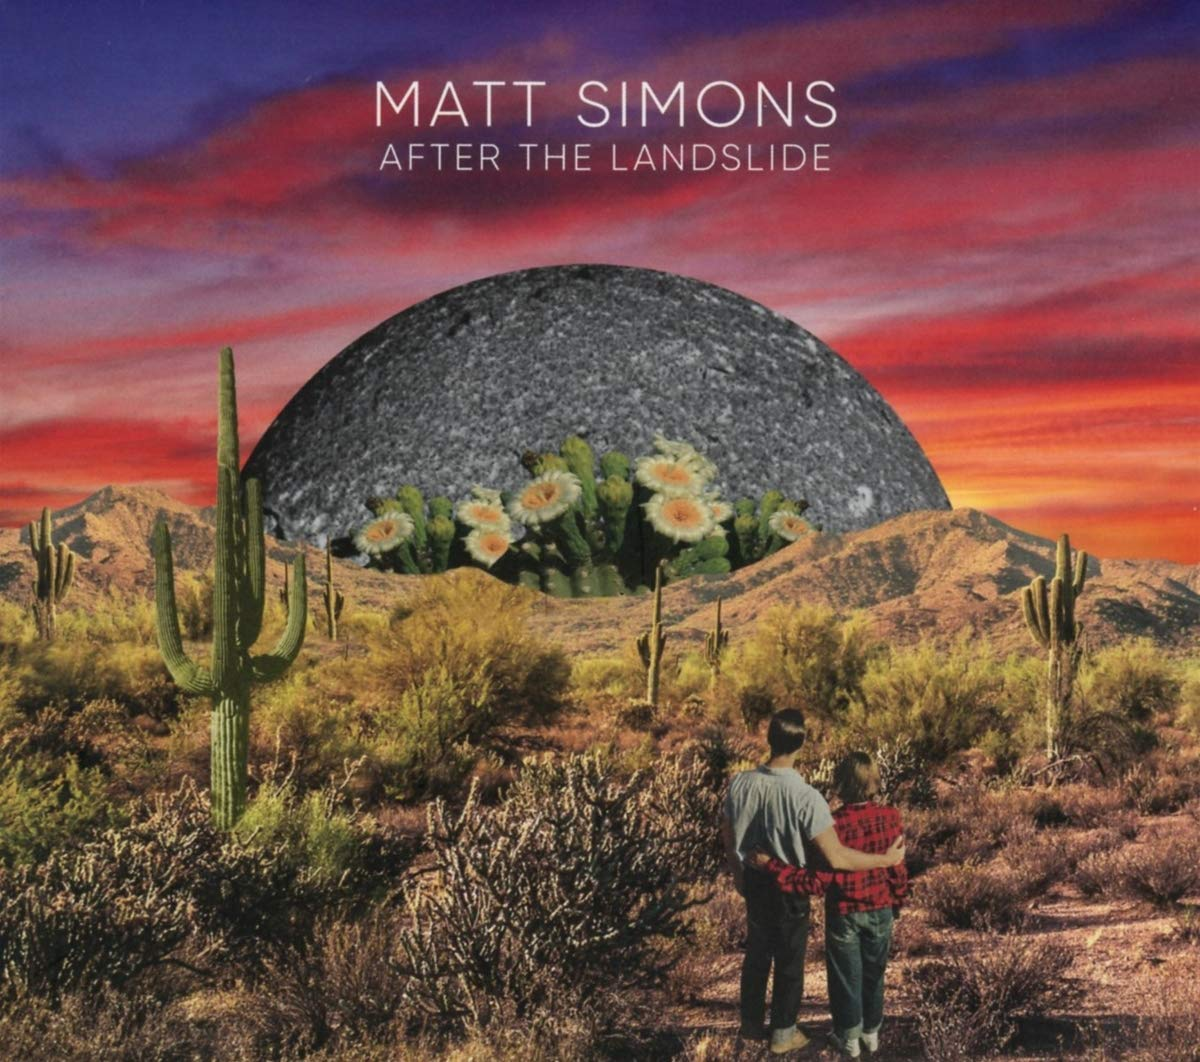 Matt Simons After The Landslide artwork